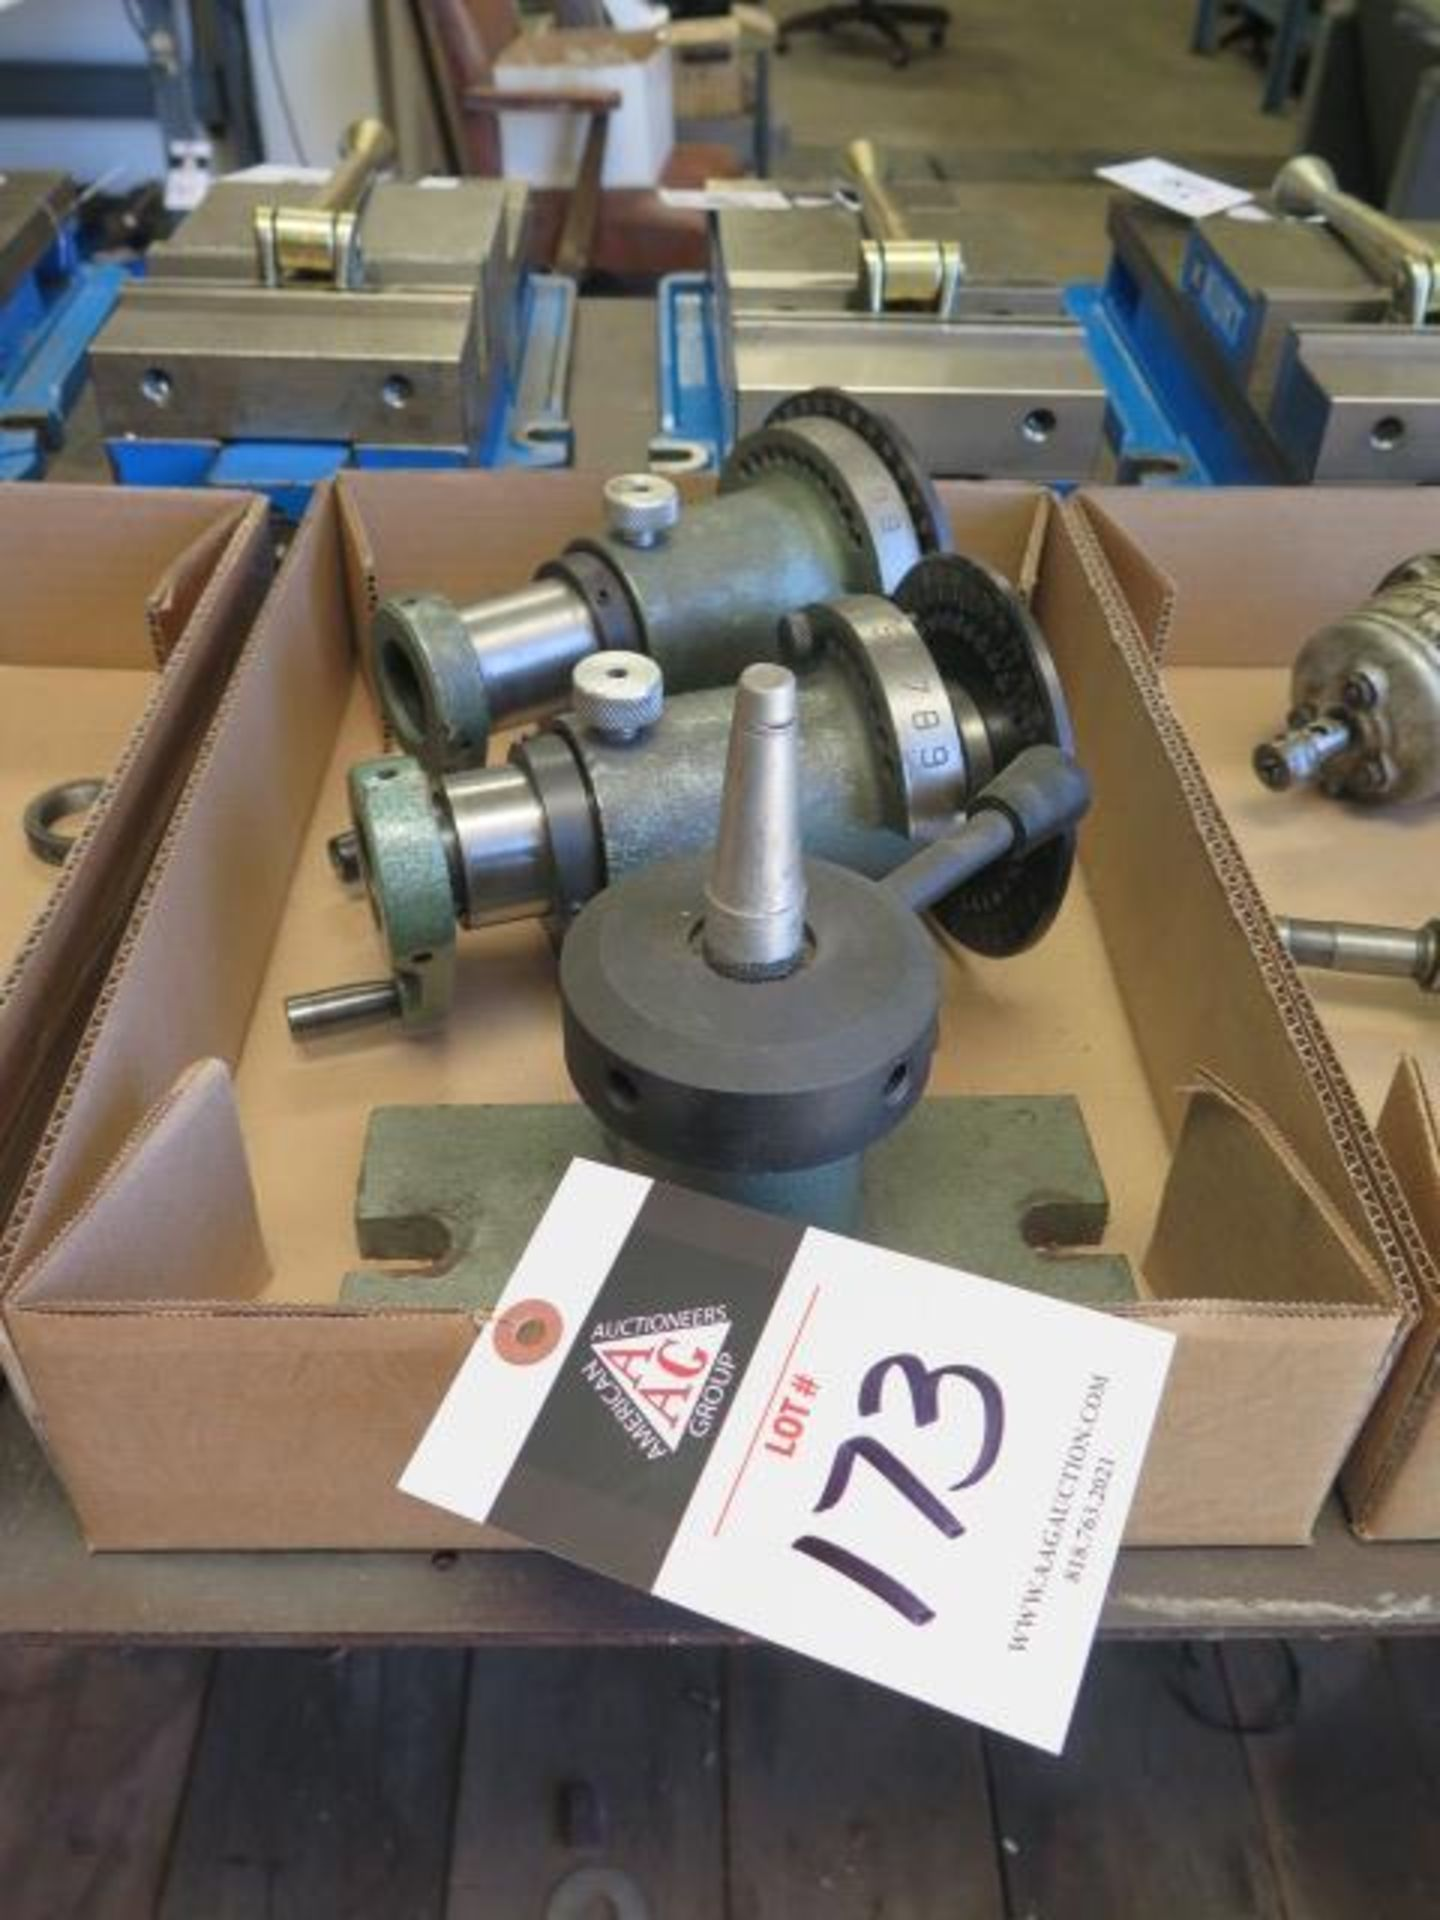 5C Spin Fixture and 5C Collet Closer (SOLD AS-IS - NO WARRANTY)